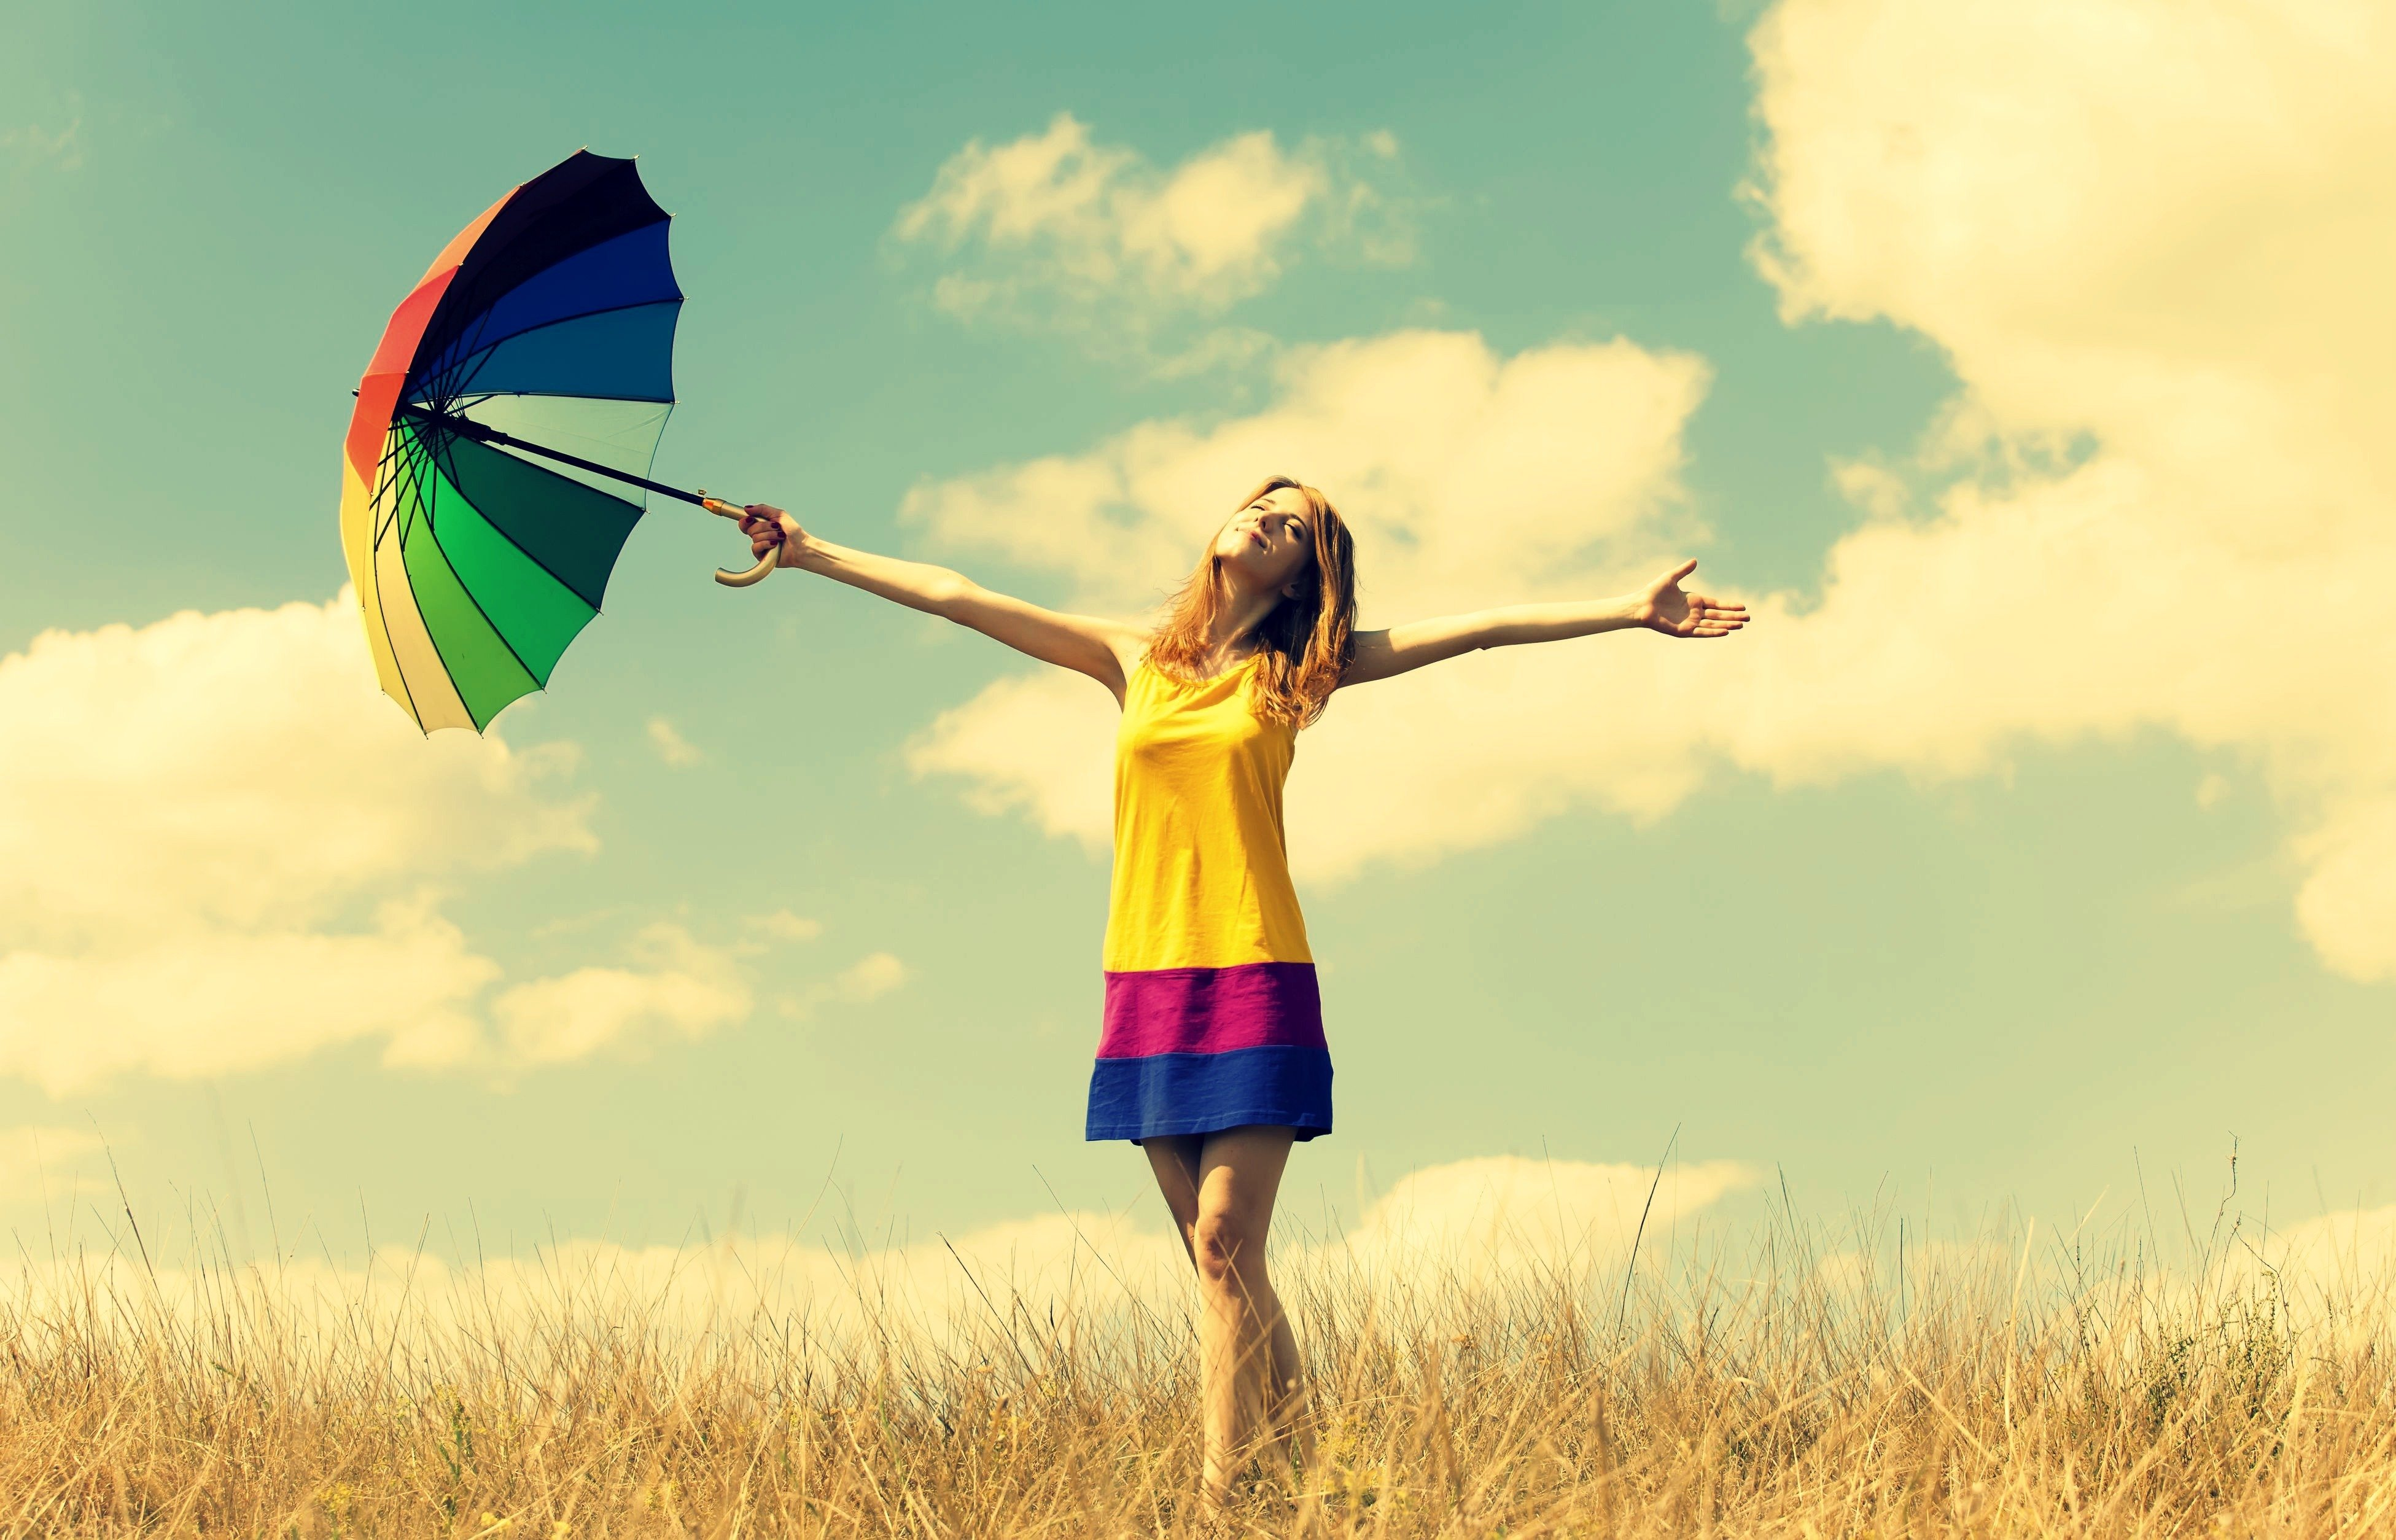 happiness wallpapers photos and desktop backgrounds up to 8k